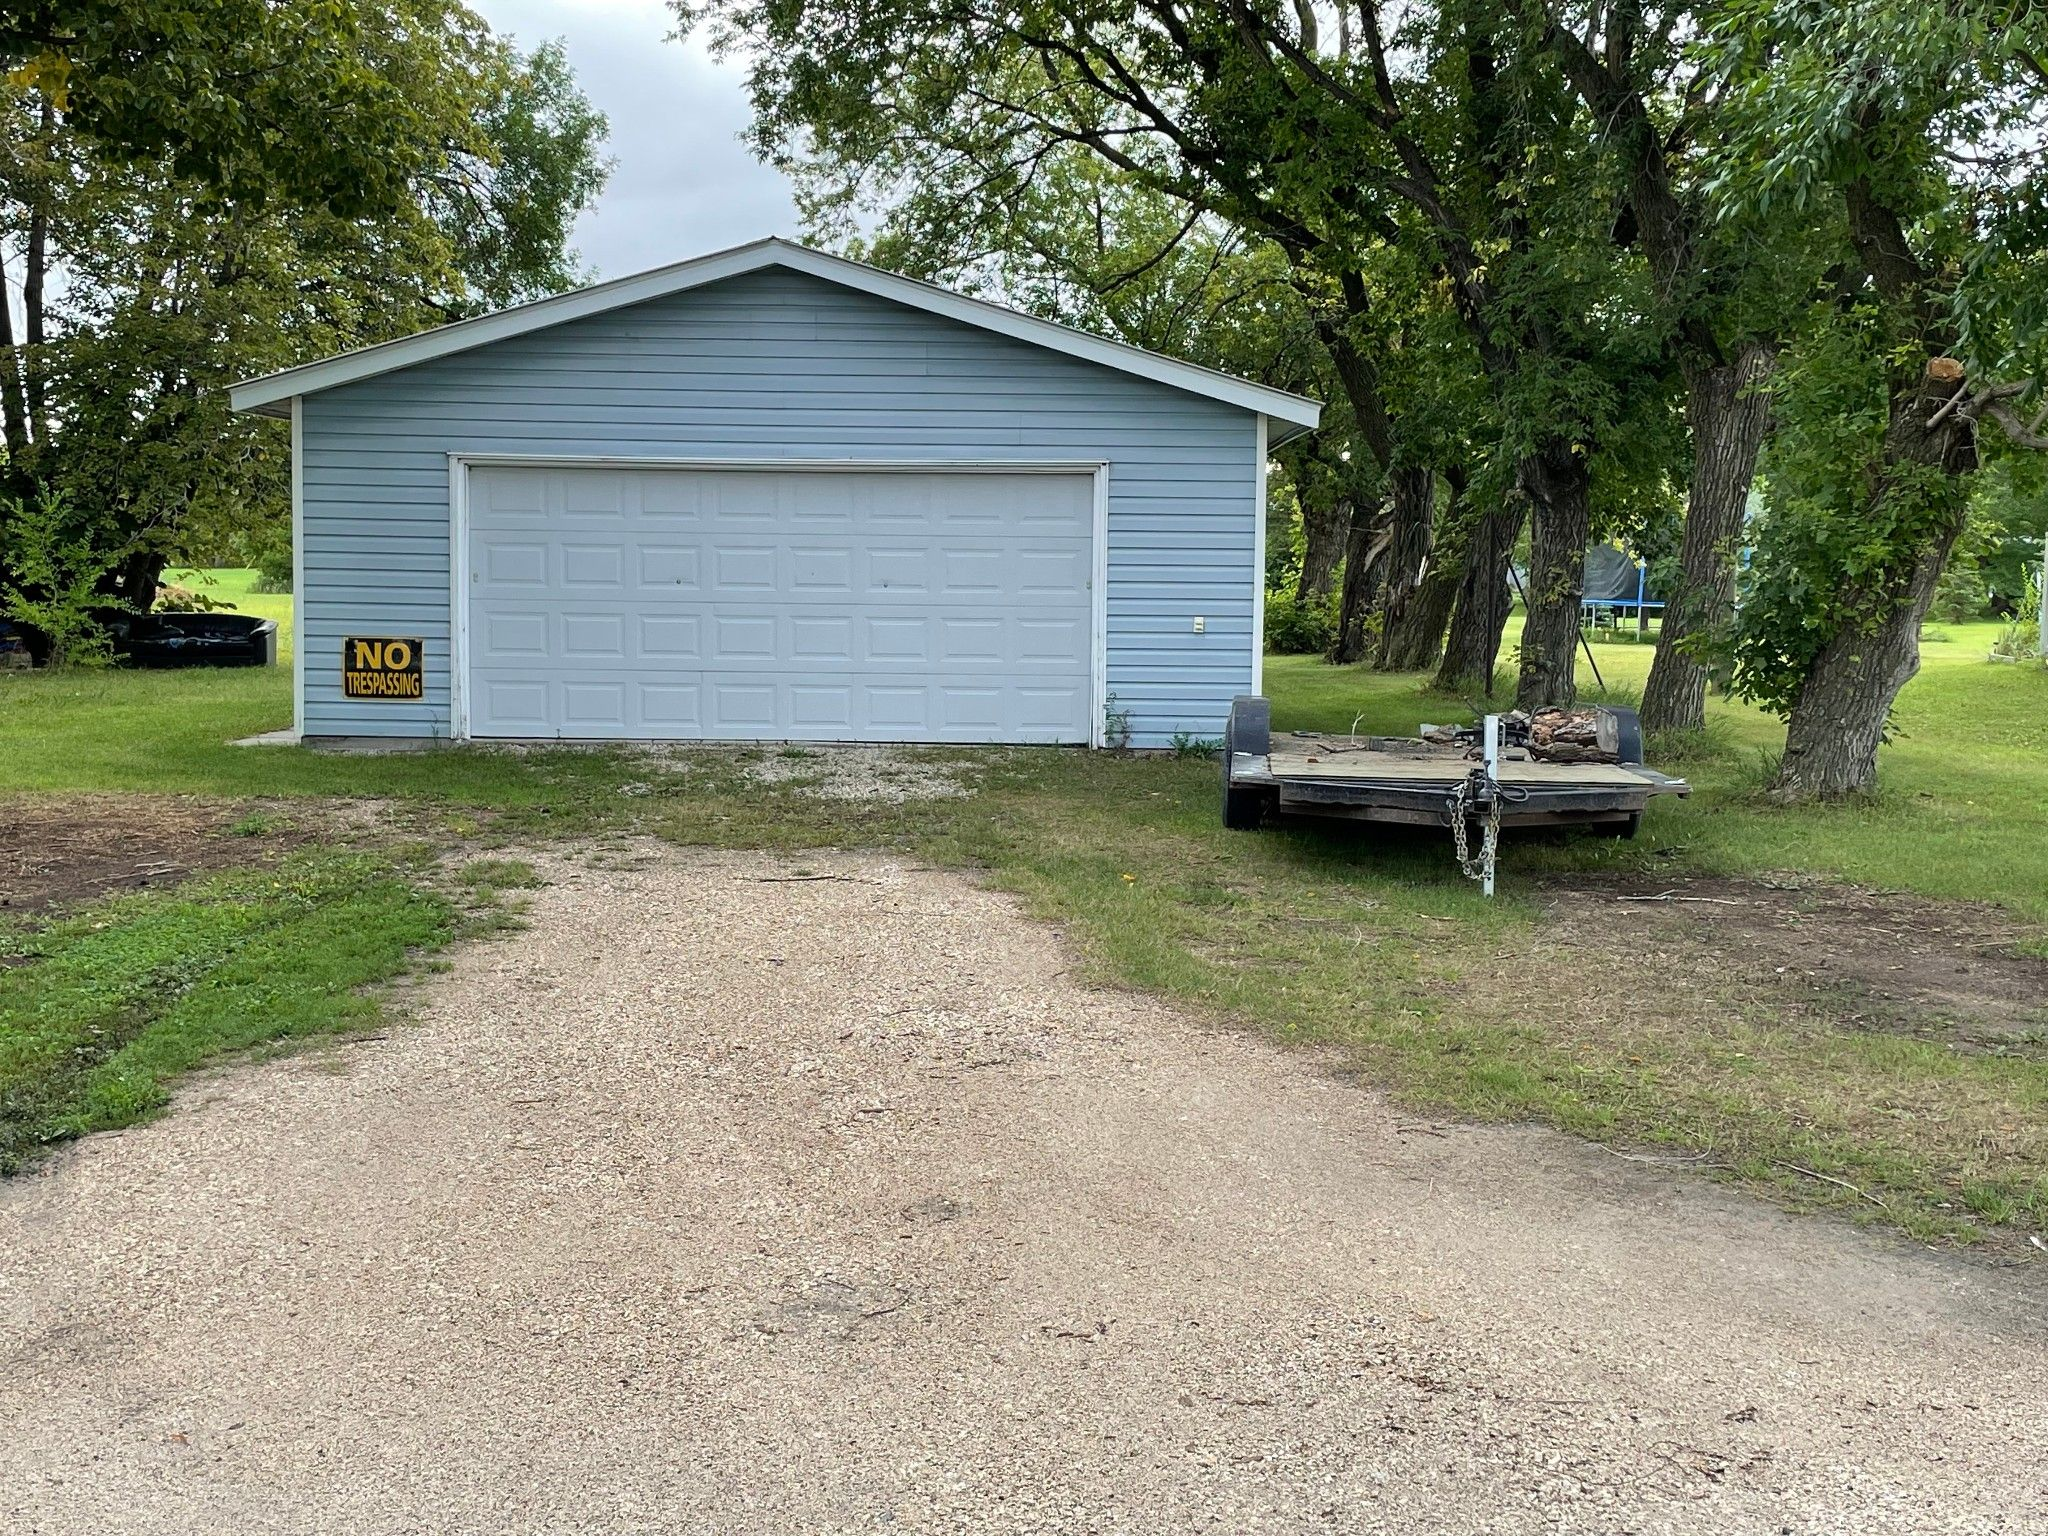 Main Photo: 0 Beaudin Street in St Eustache: Vacant Land for sale (50' x 190')  : MLS®# 202110387